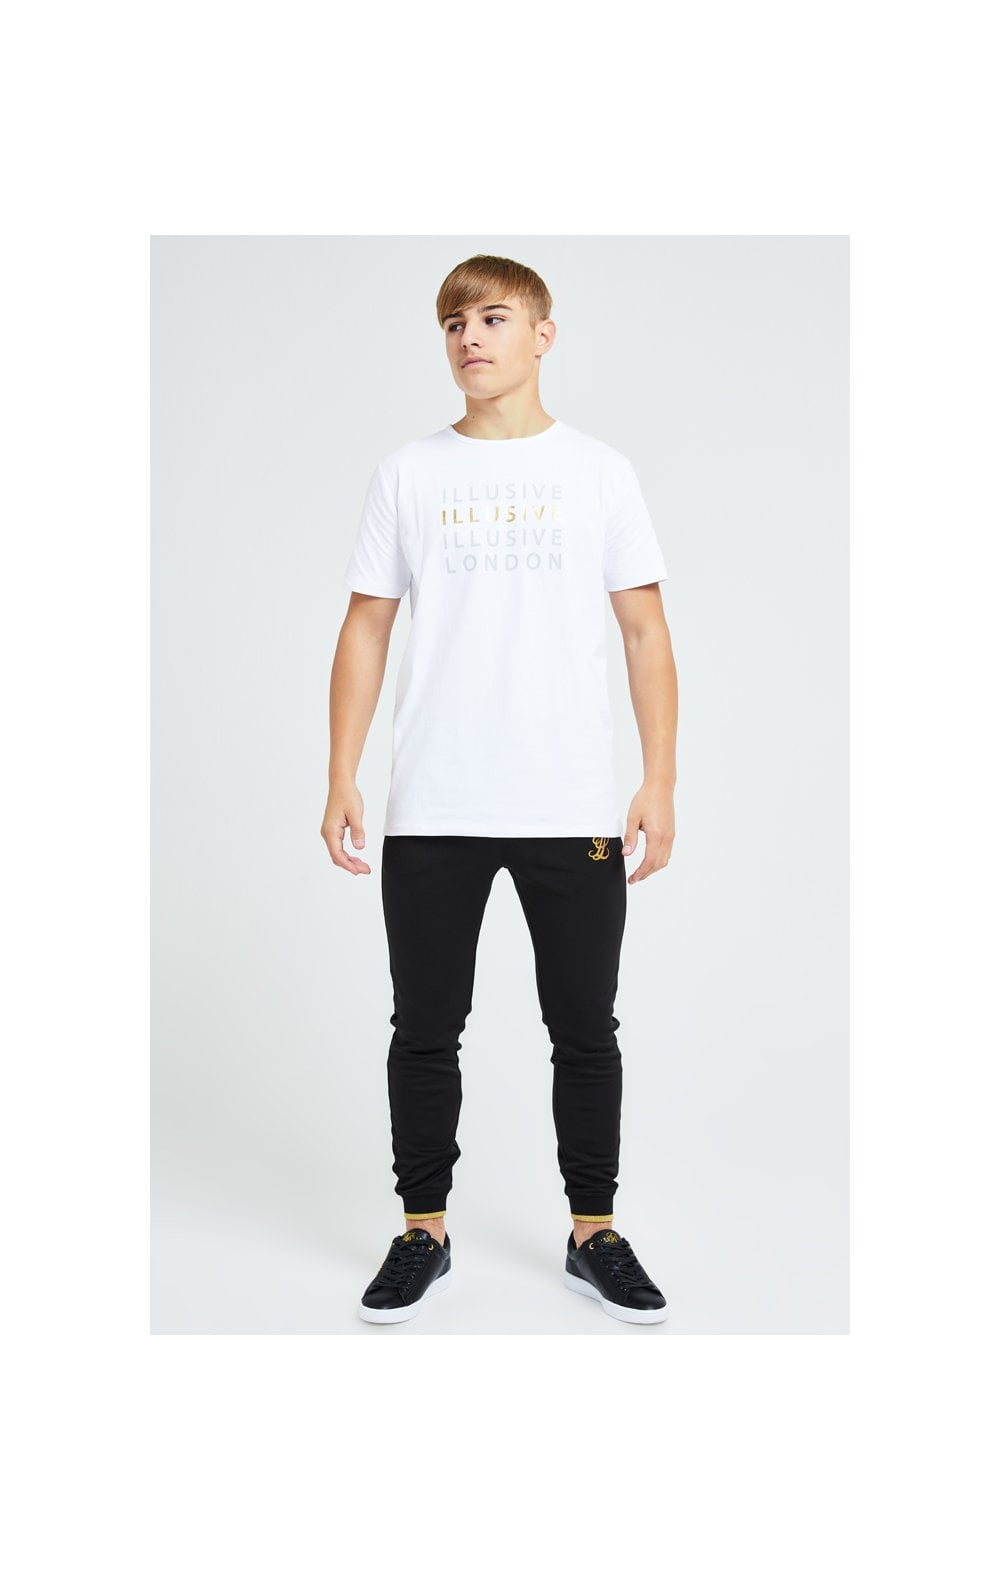 Load image into Gallery viewer, Illusive London Sovereign Tee - White & Gold (3)